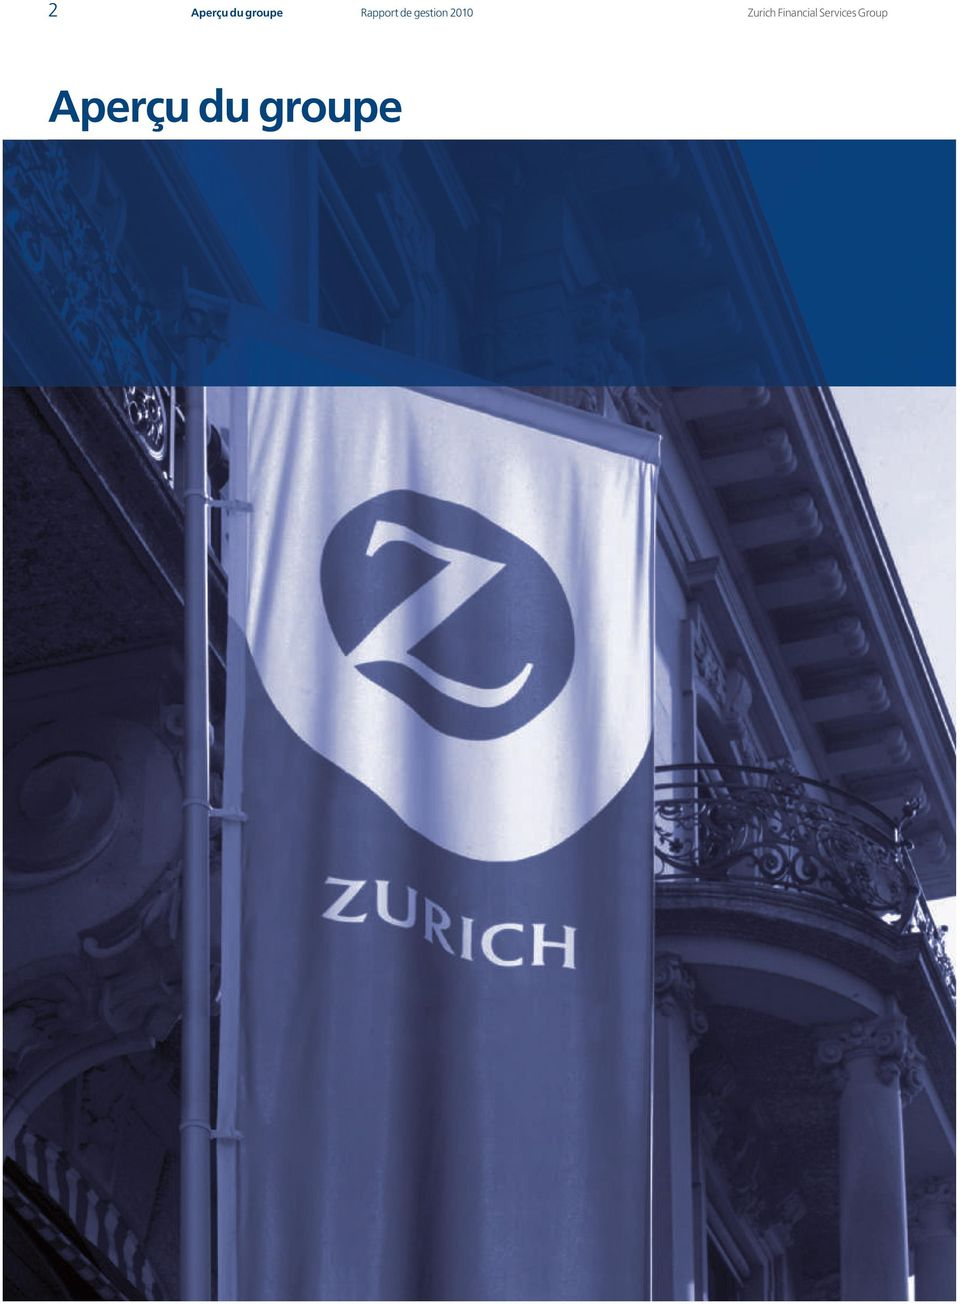 2010 Zurich Financial